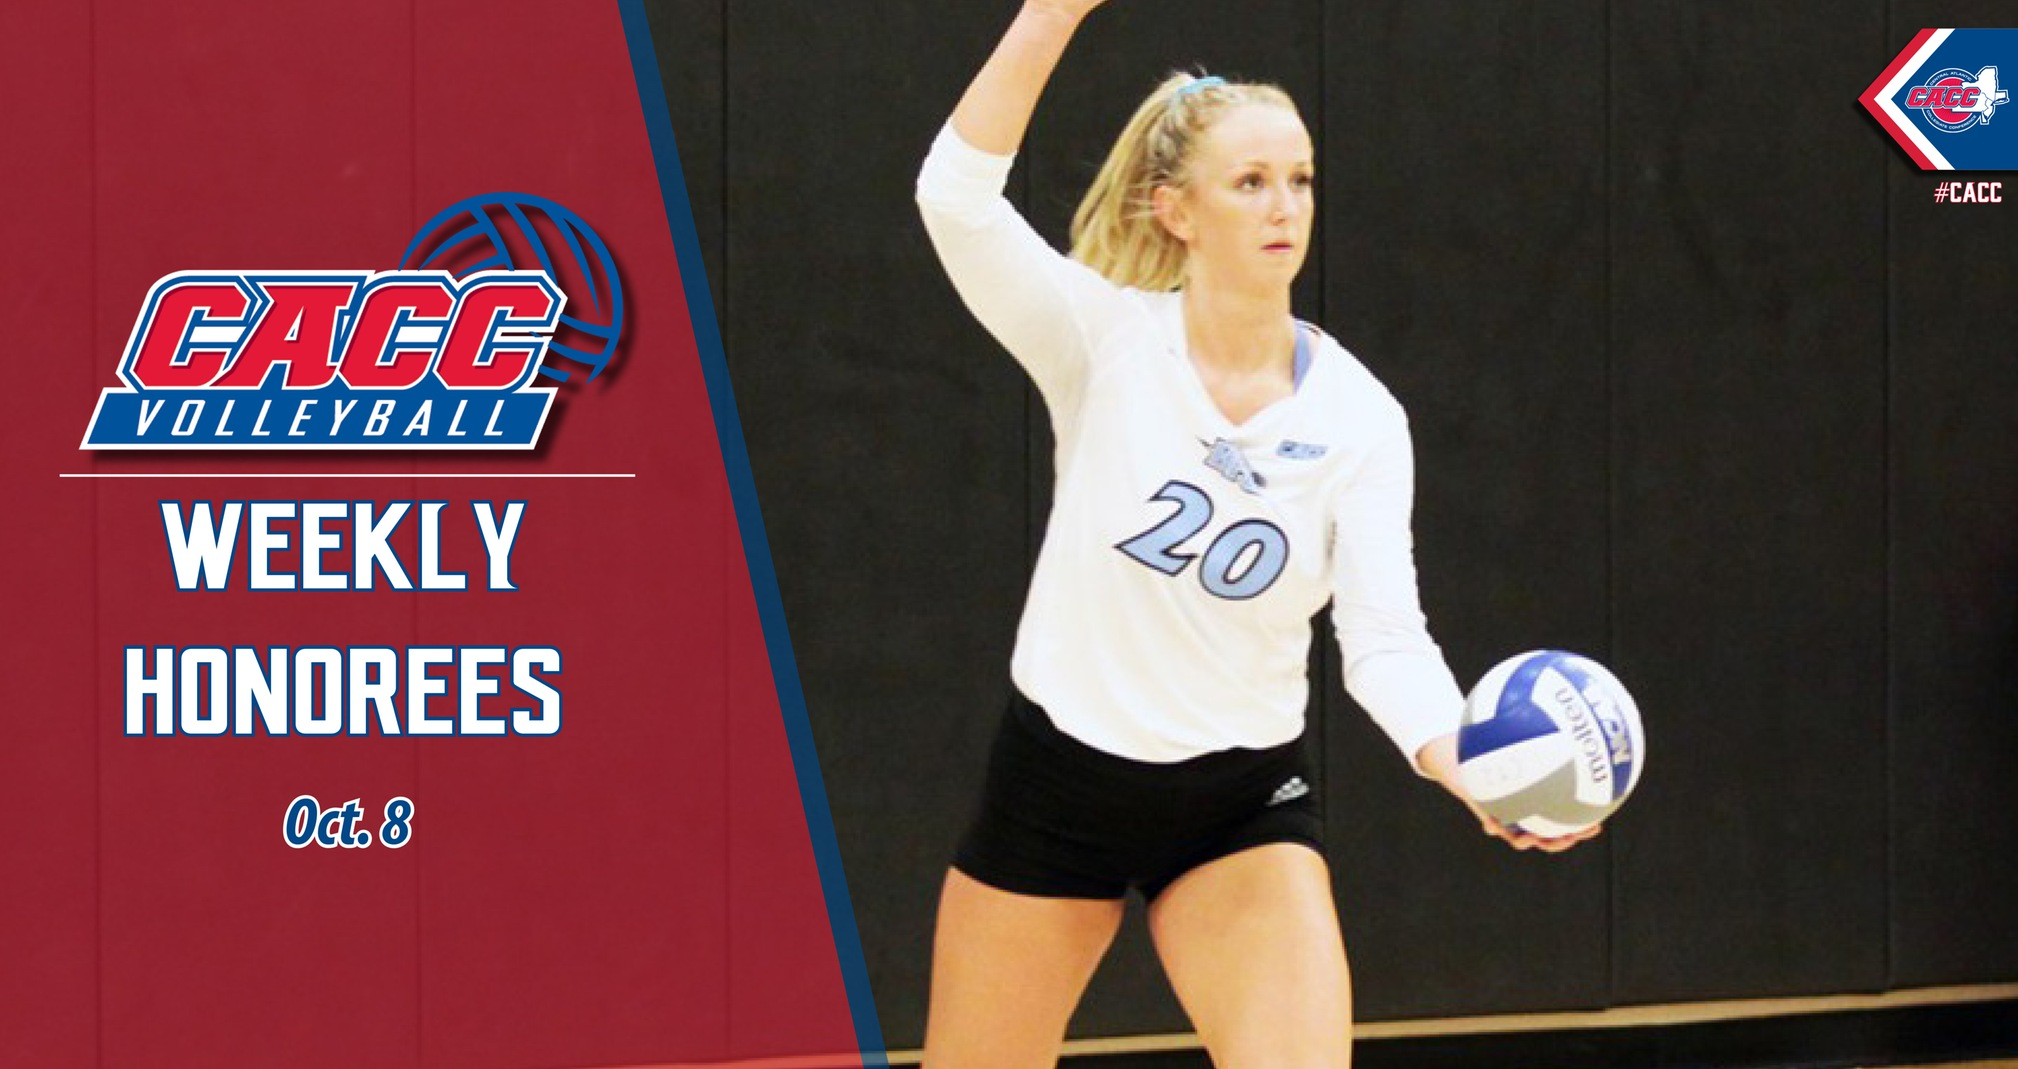 CACC Volleyball Weekly Honorees (Oct. 8)